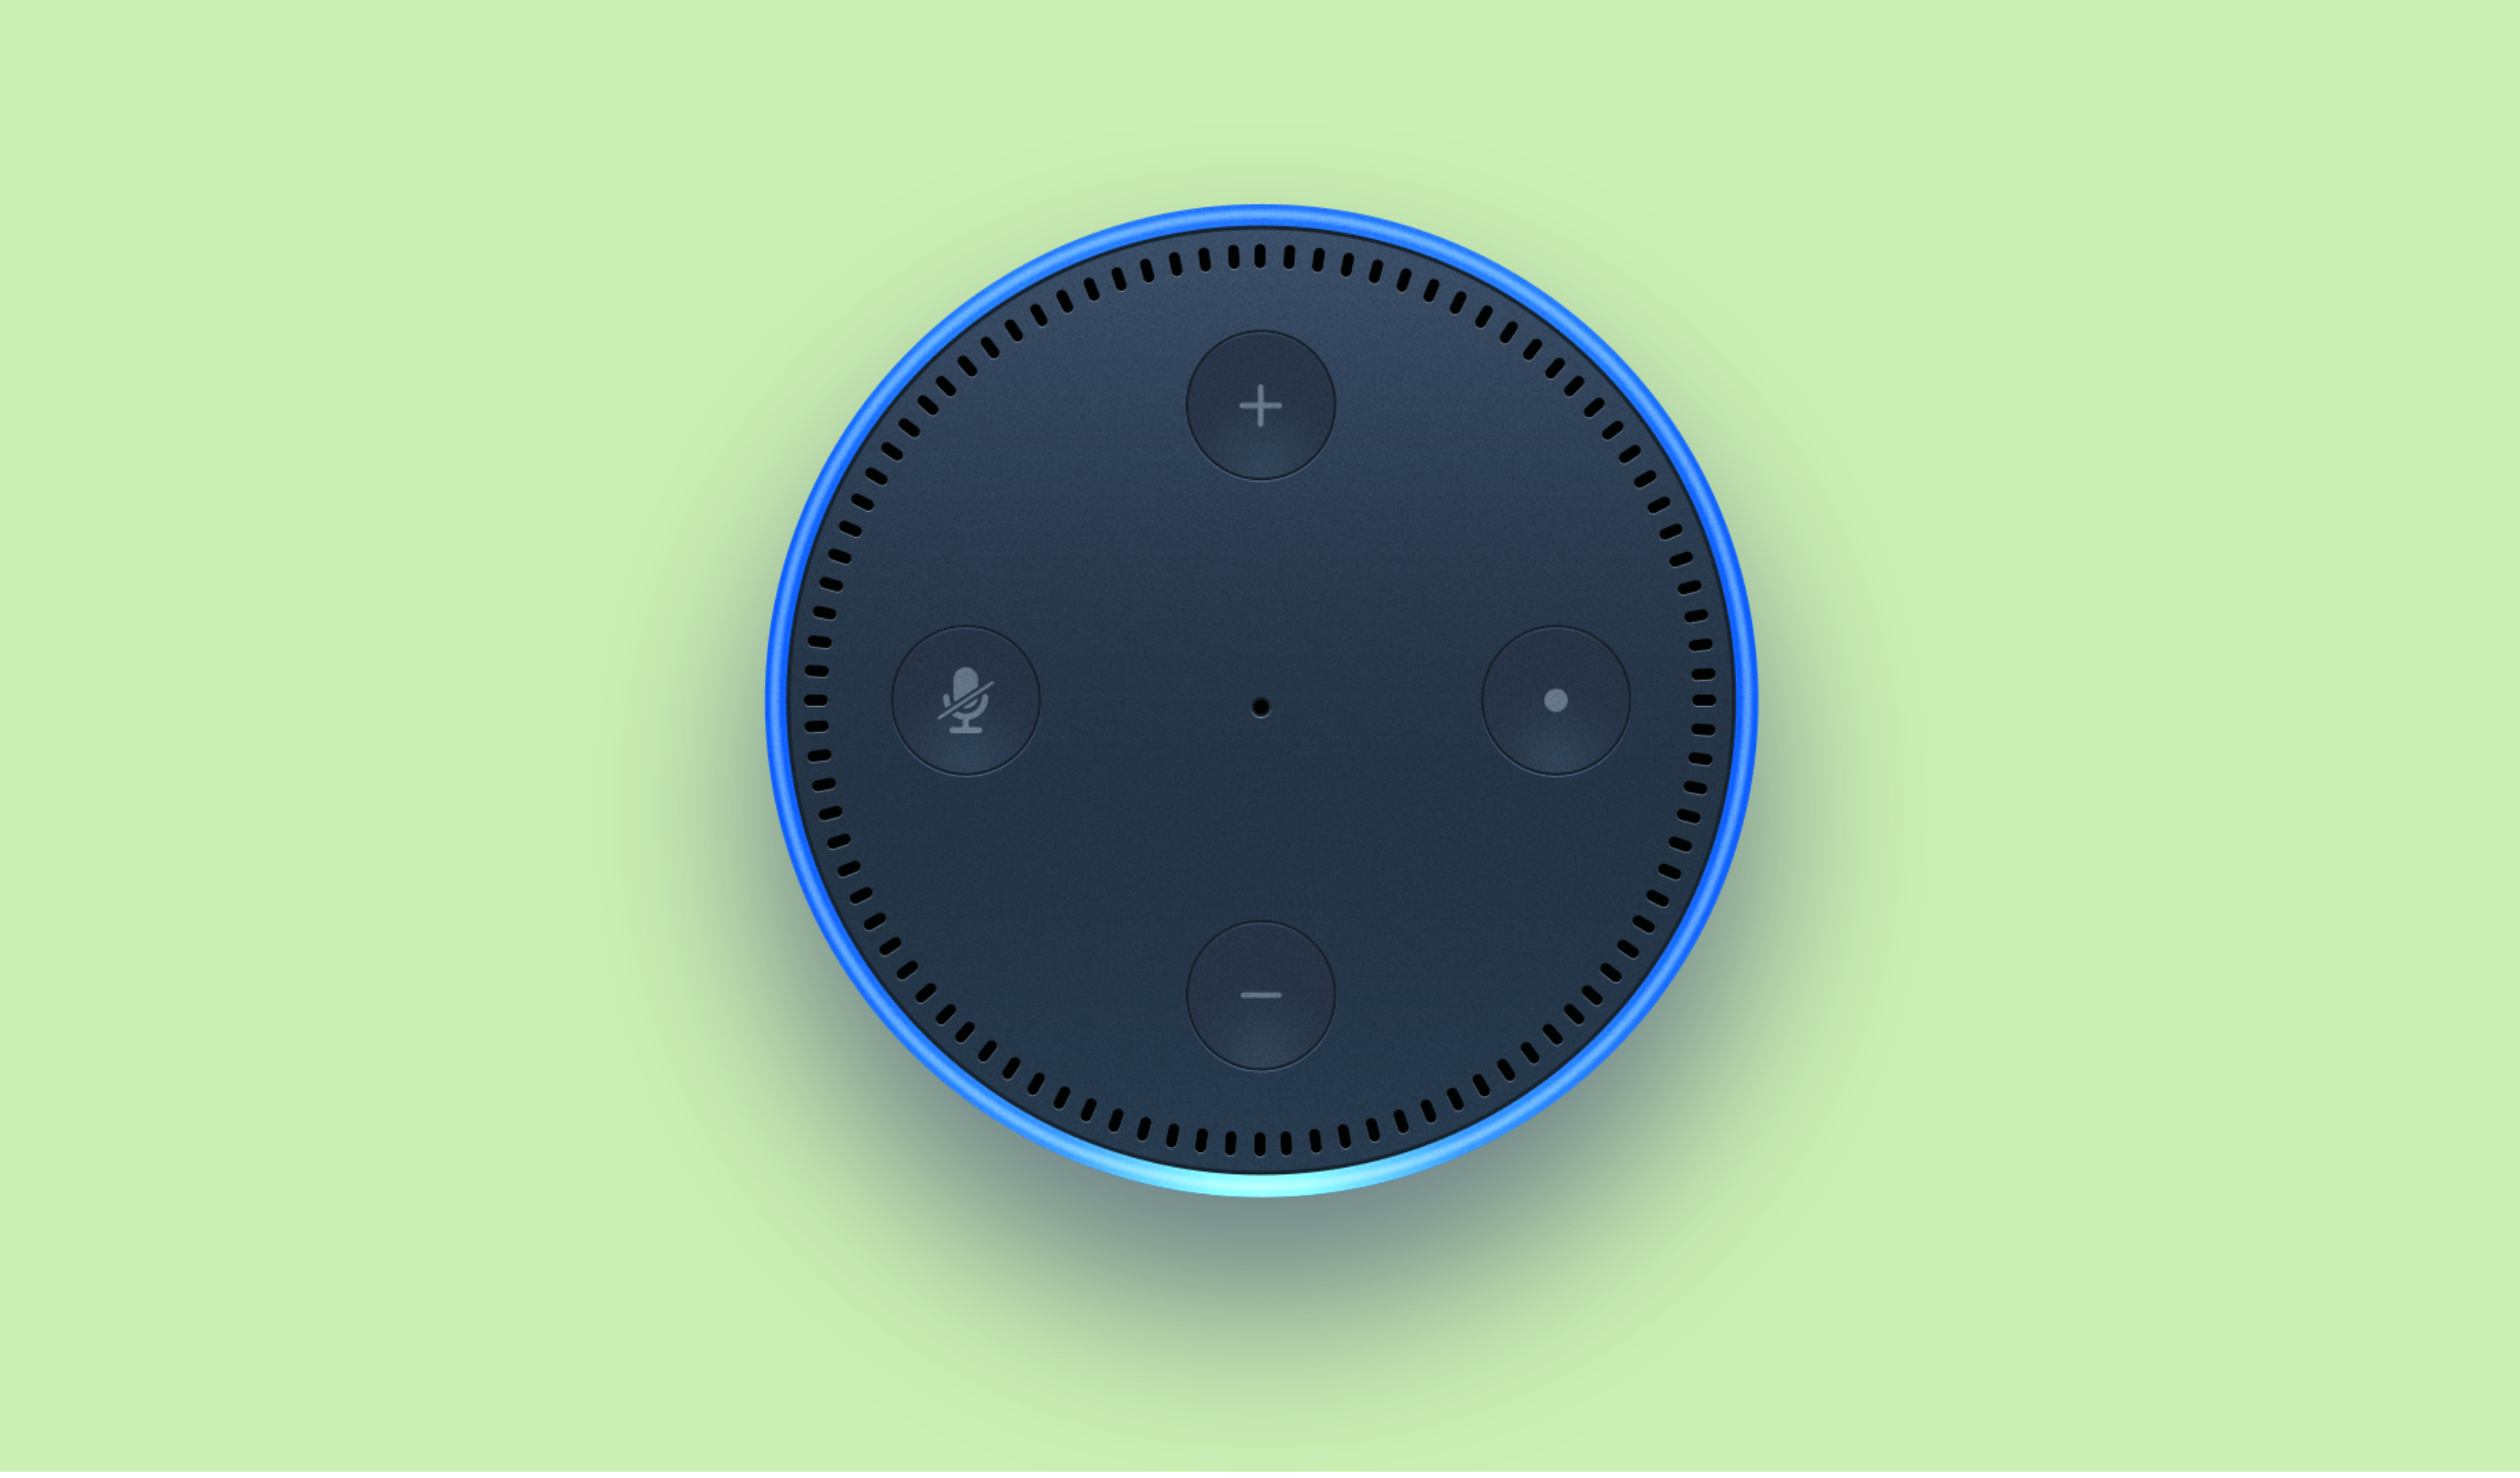 A picture of an Amazon Alexa device.